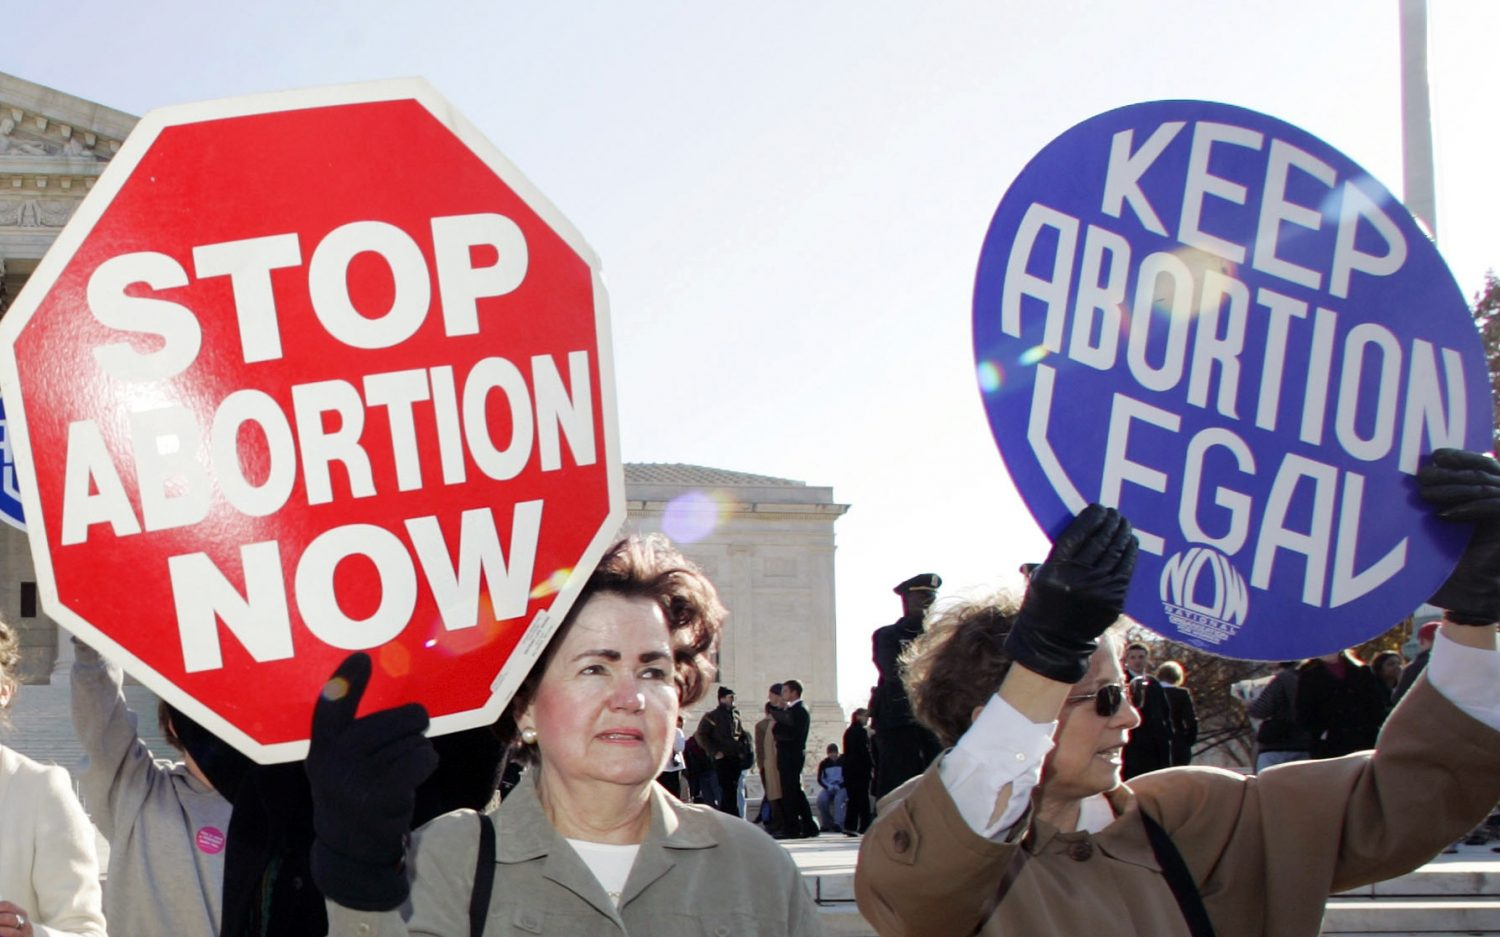 Pushing and polling on abortion